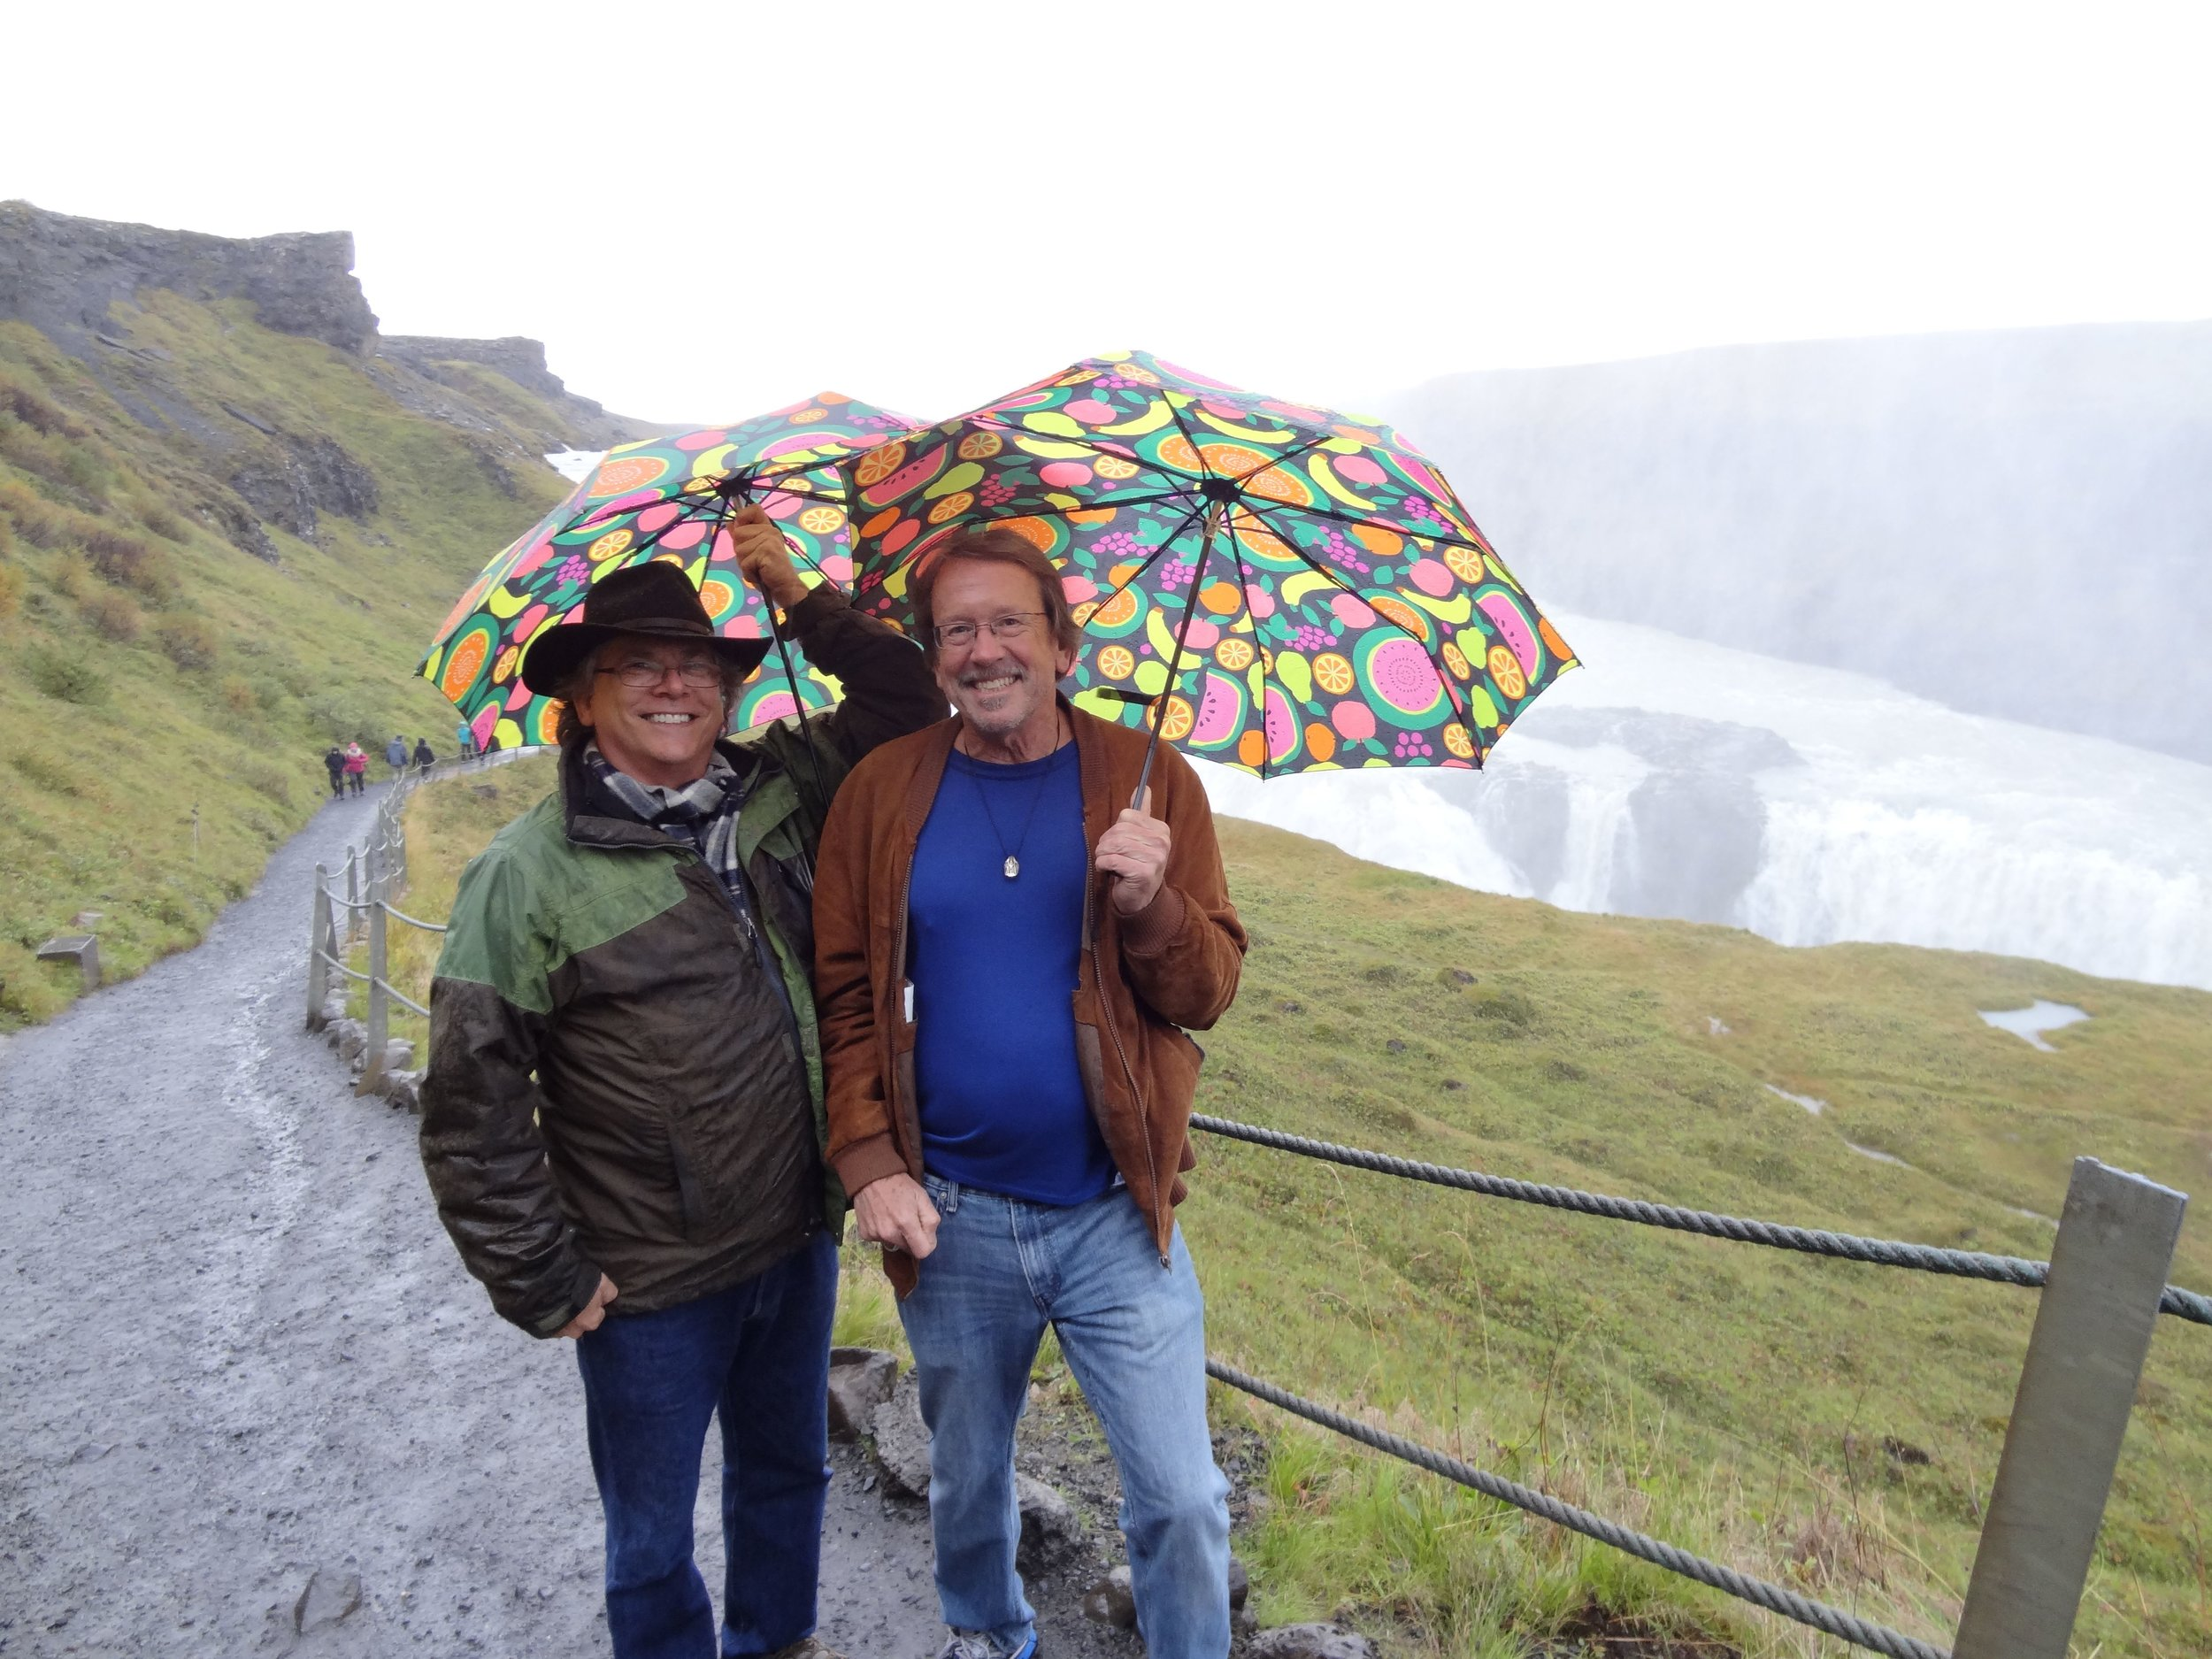 With Stephen Silha at Gulfoss (Golden Falls), an enormous waterfall located in the canyon of the Hvítá river in southwest Iceland.